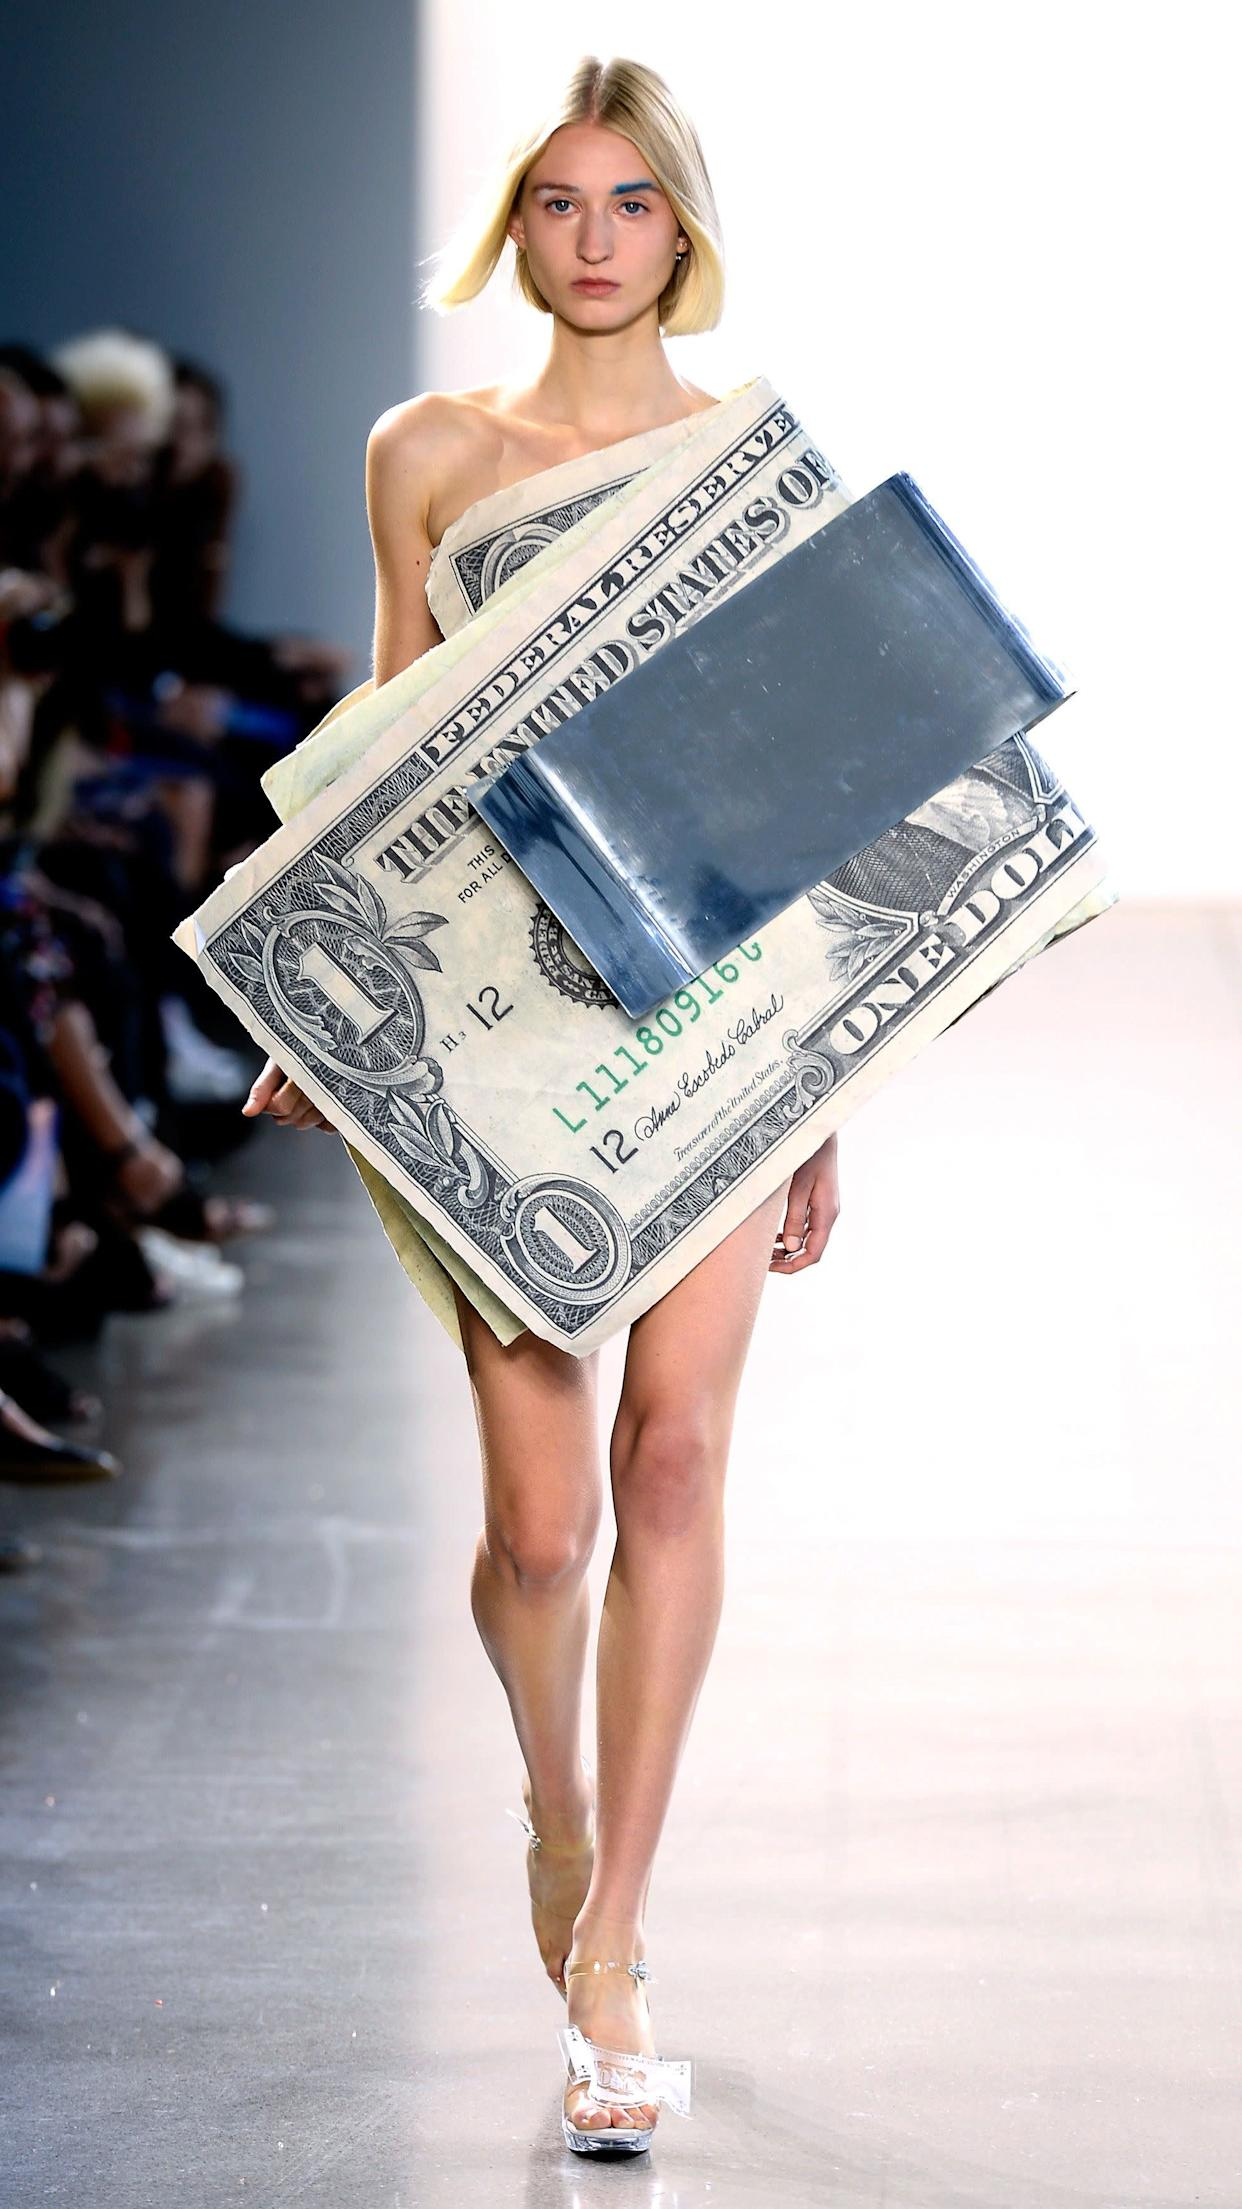 Designer Kota Okuda sent models down the runway in looks like this one, meant to redefine American currency &quot;<span>by commodifying its value in an alchemistic system of dress</span>&amp;rdquo; on Sept. 7.&amp;nbsp;